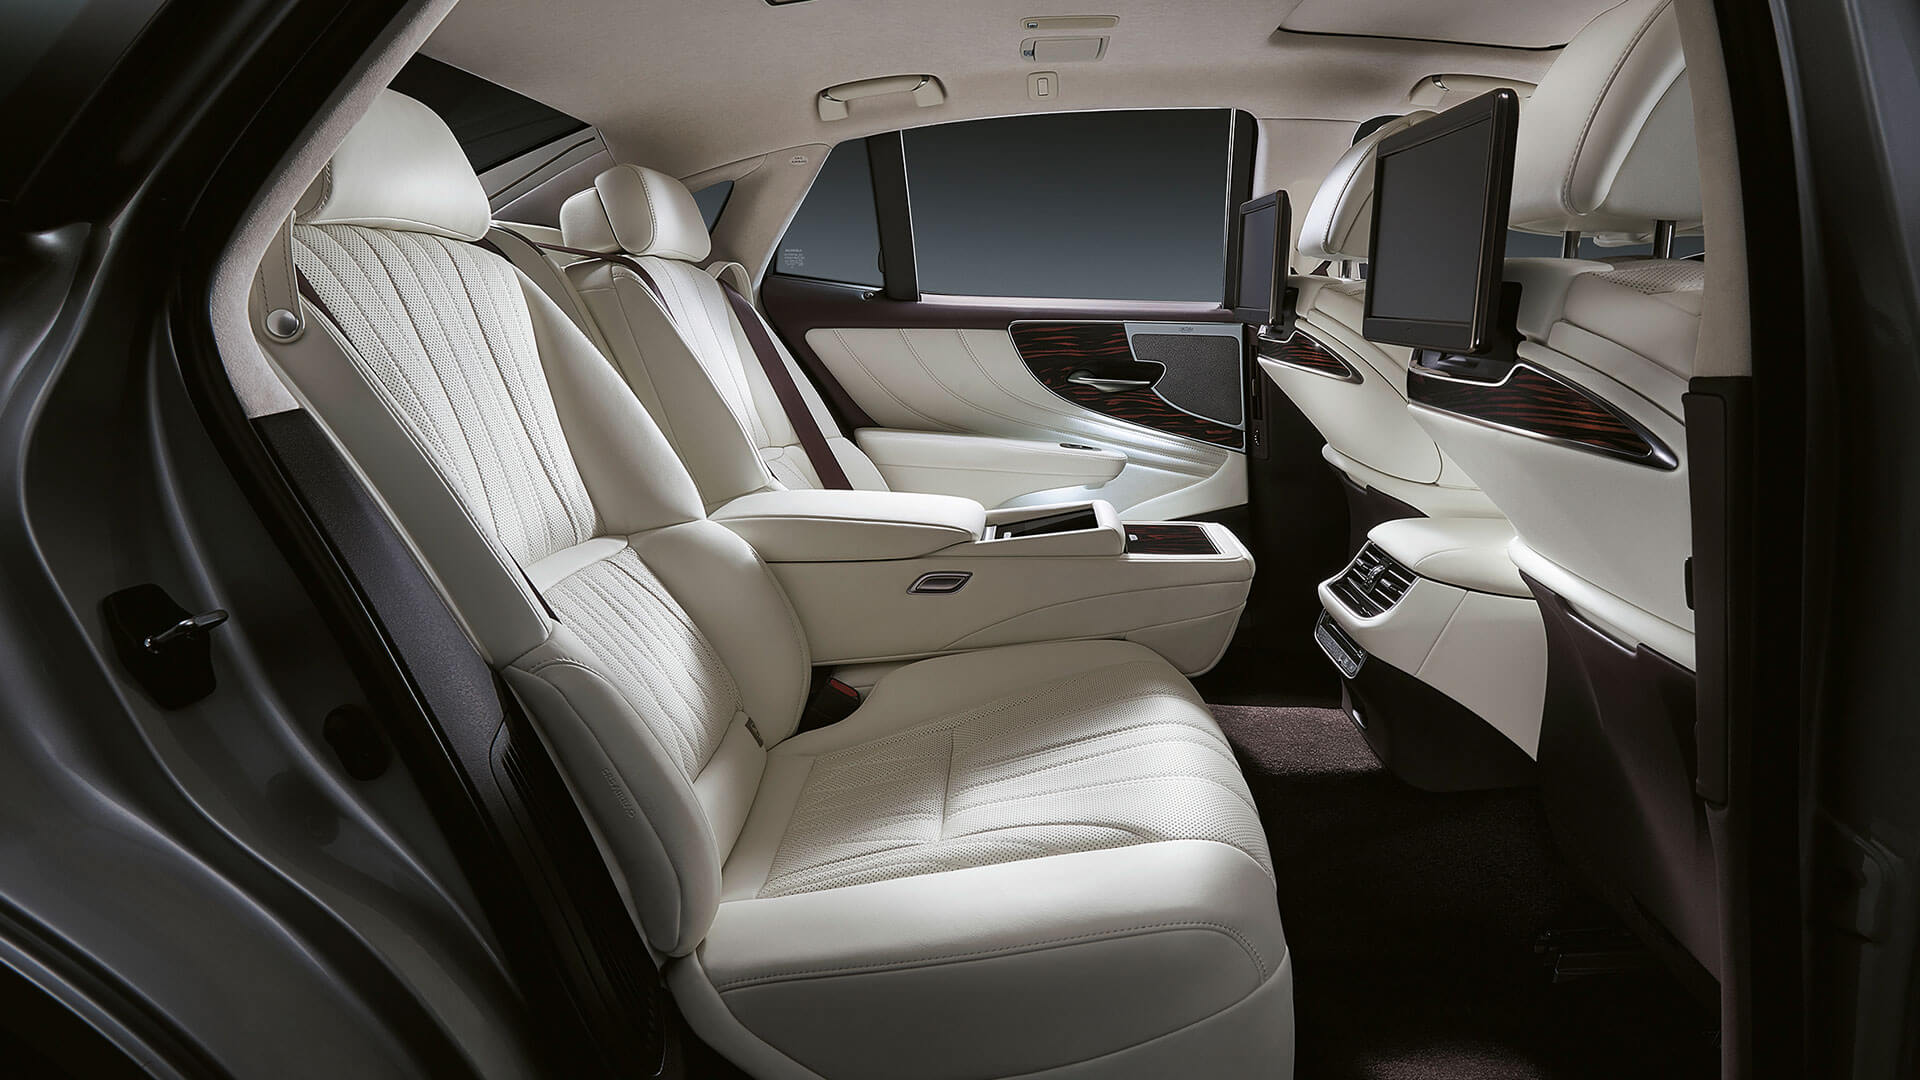 2018 lexus ls features leather seats